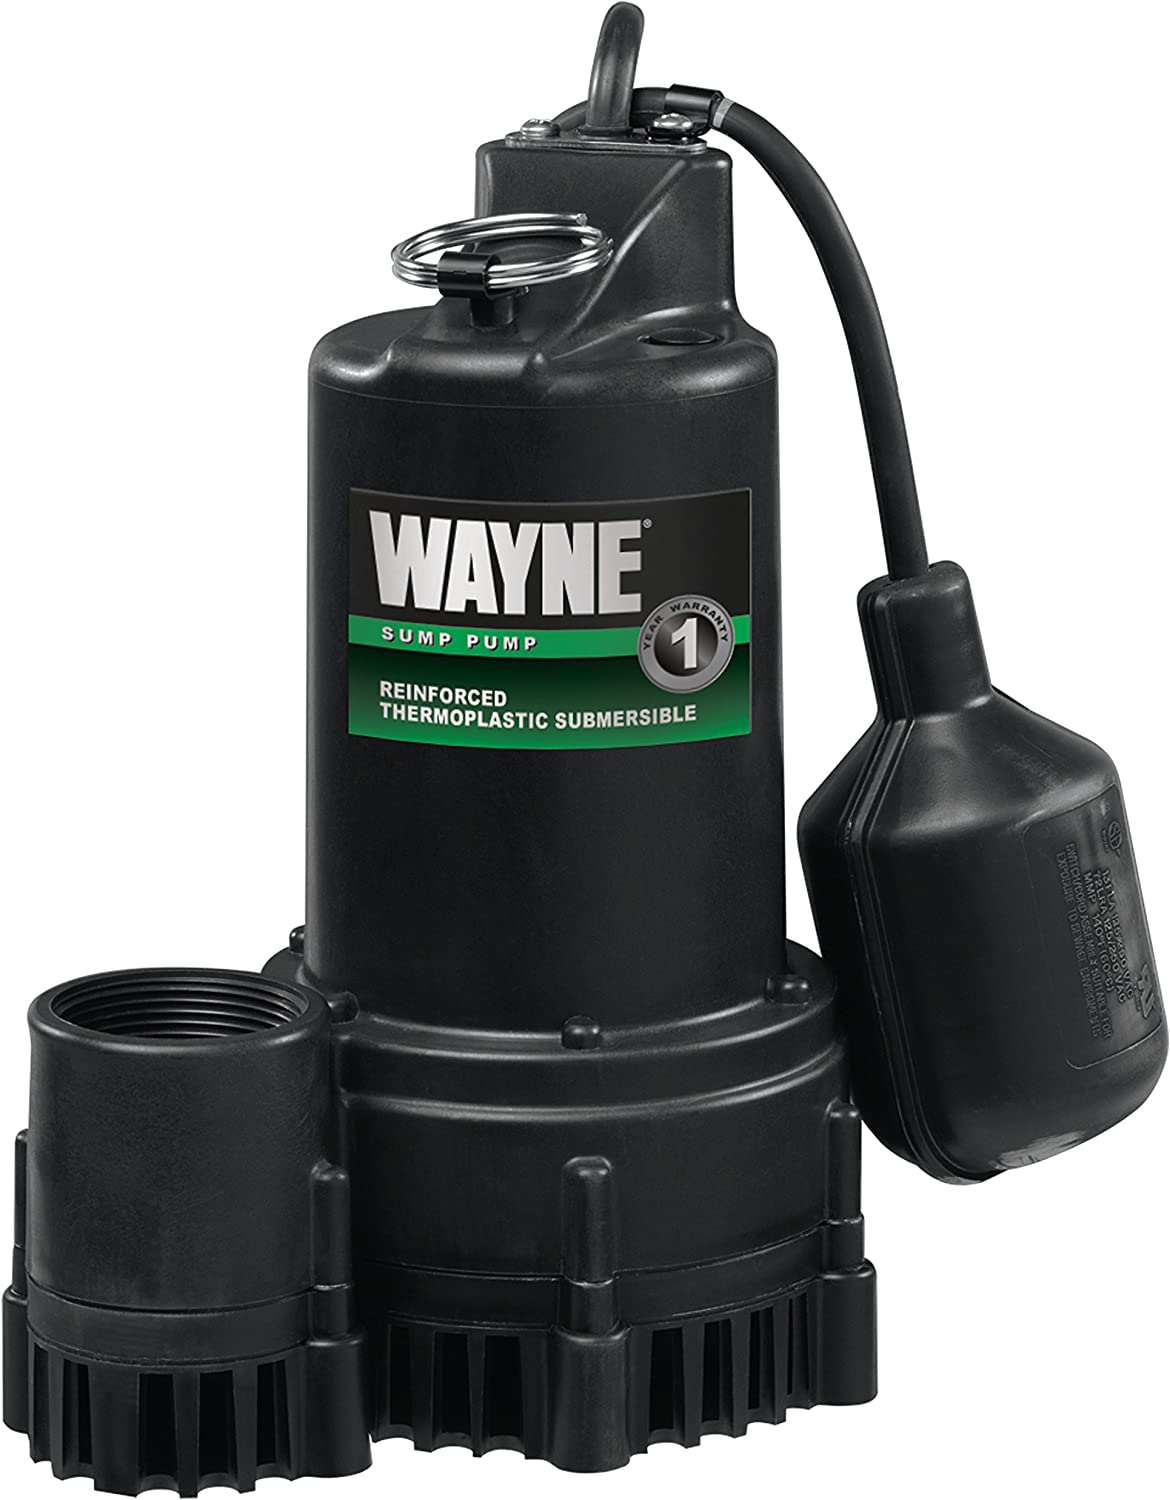 Wayne RSP130 Submersible Sump Pump With Piggy Back Tether Float Switch, 1, port